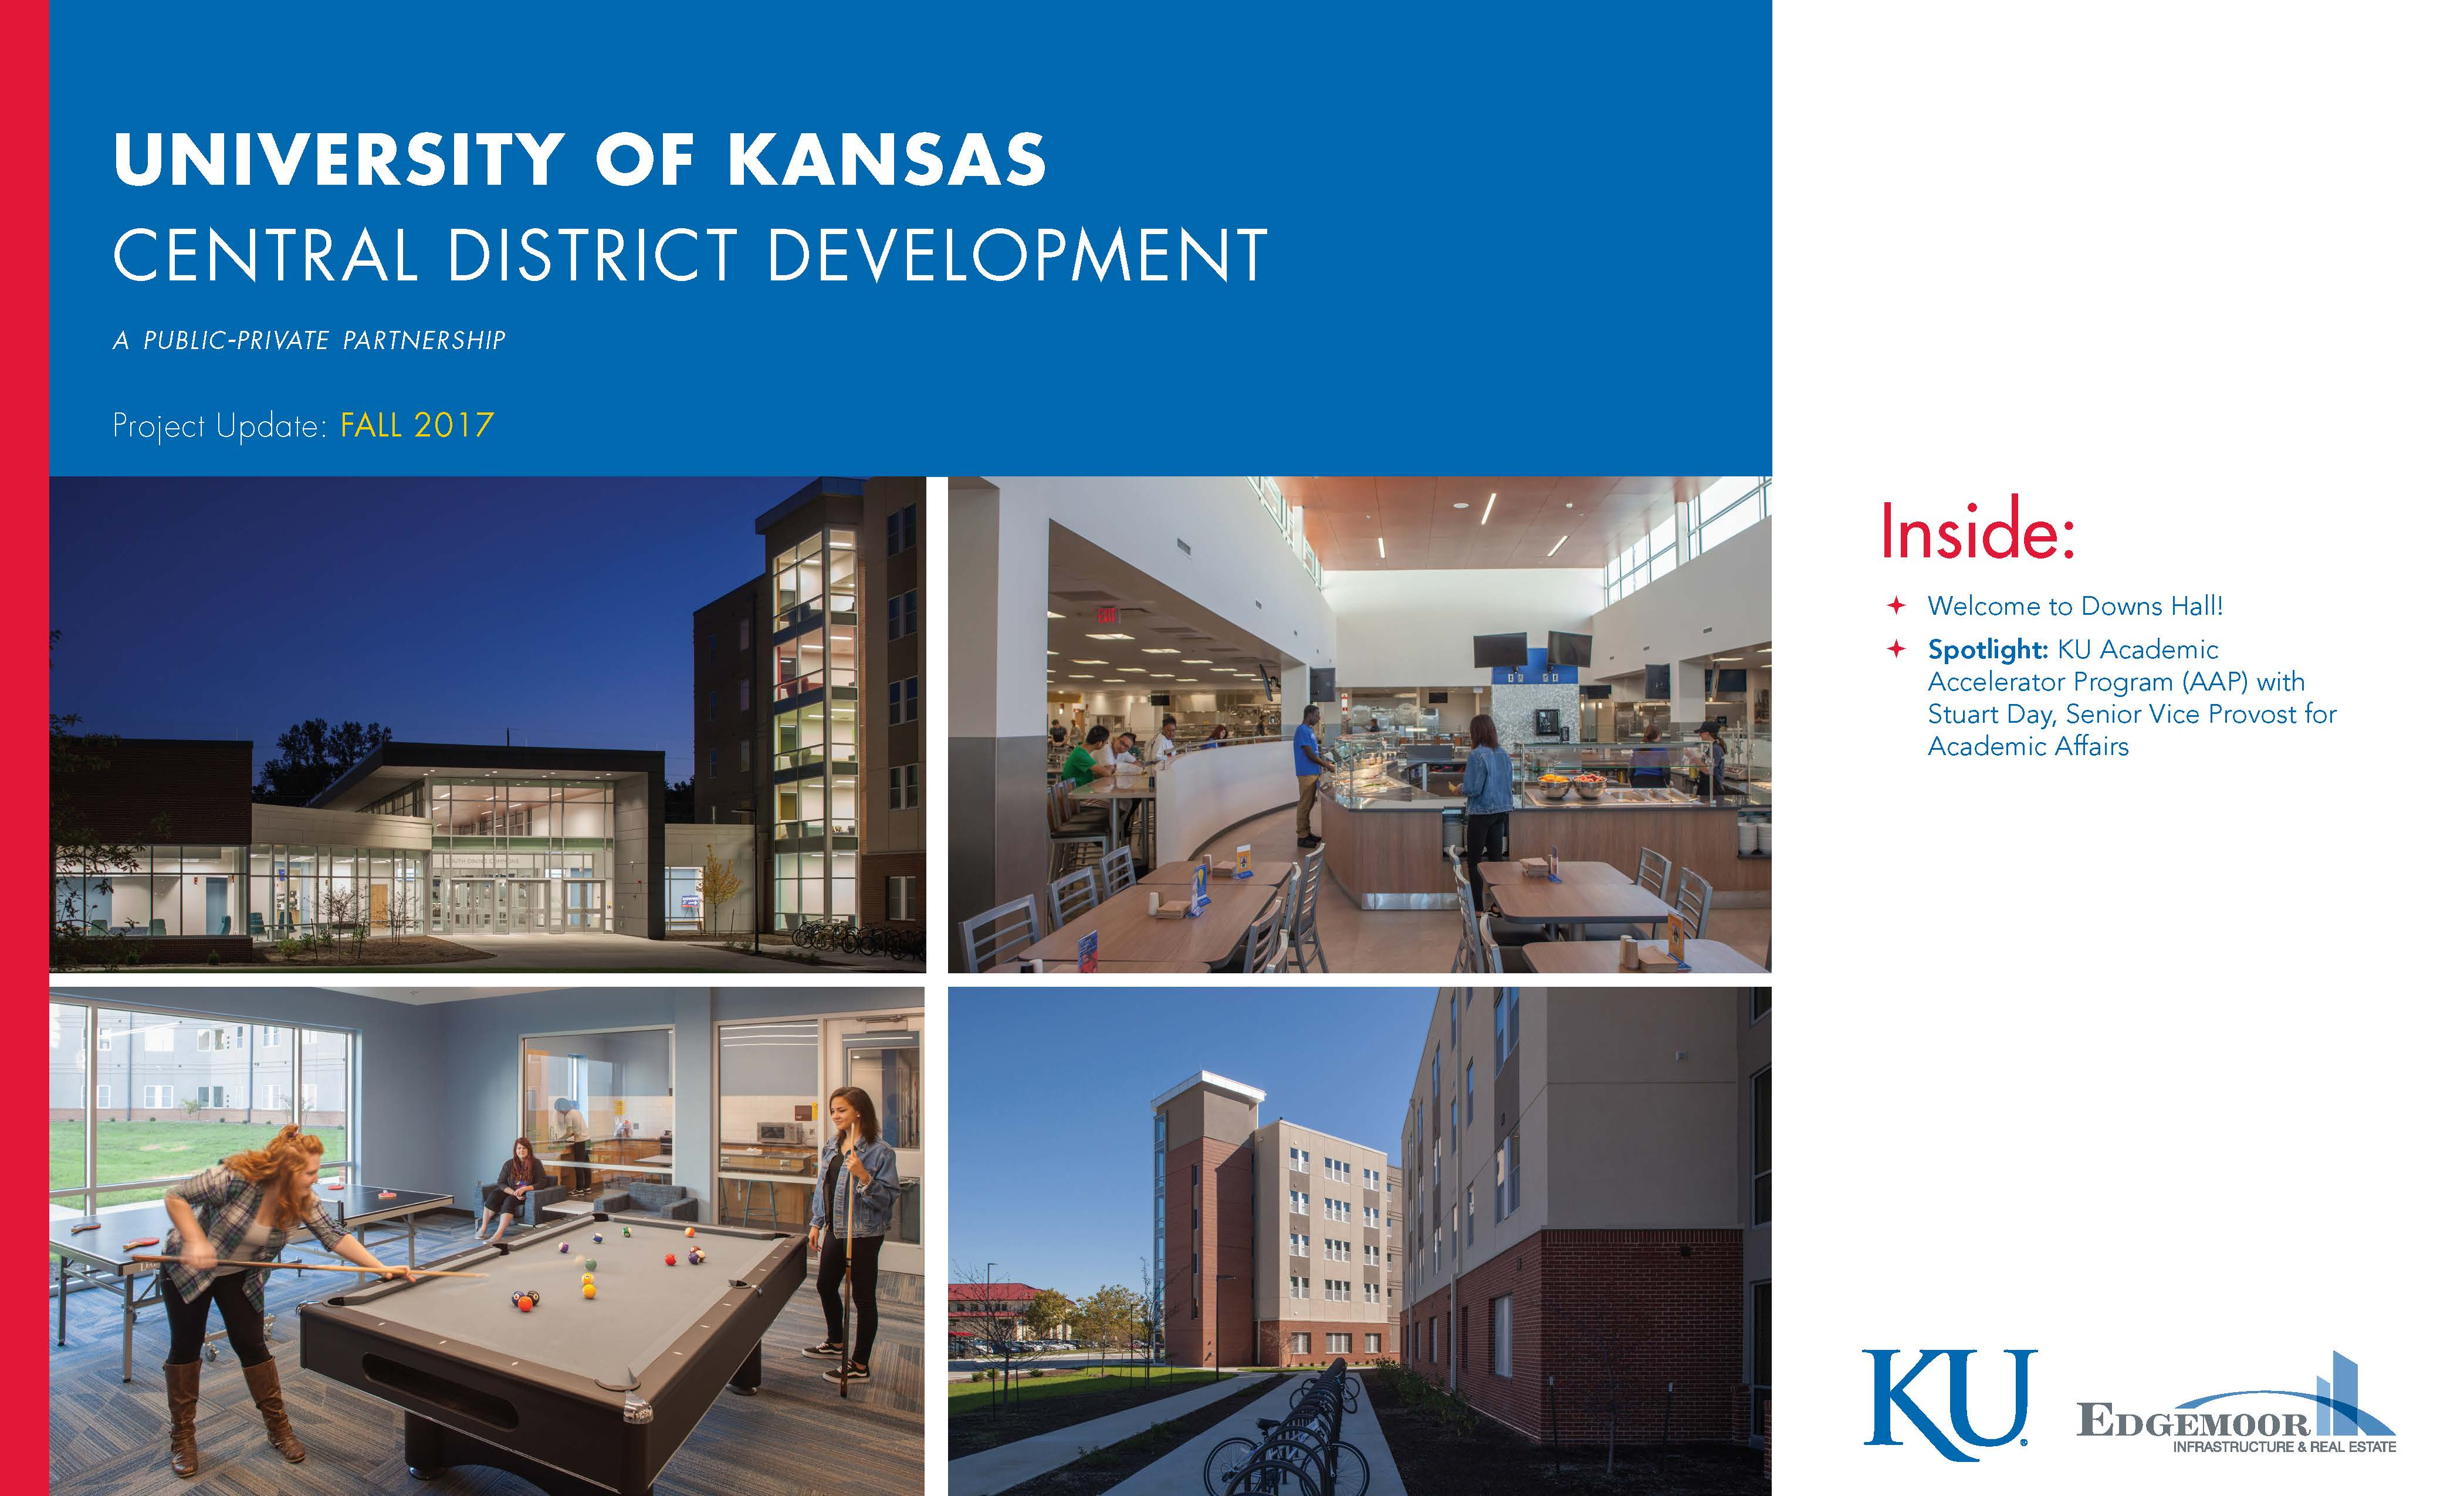 Download a copy of the University of Kansas' Central District Development Fall 2017 Newsletter, highlighting the completion of Downs Hall and an interview on the KU Academic Accelerator Program (AAP)